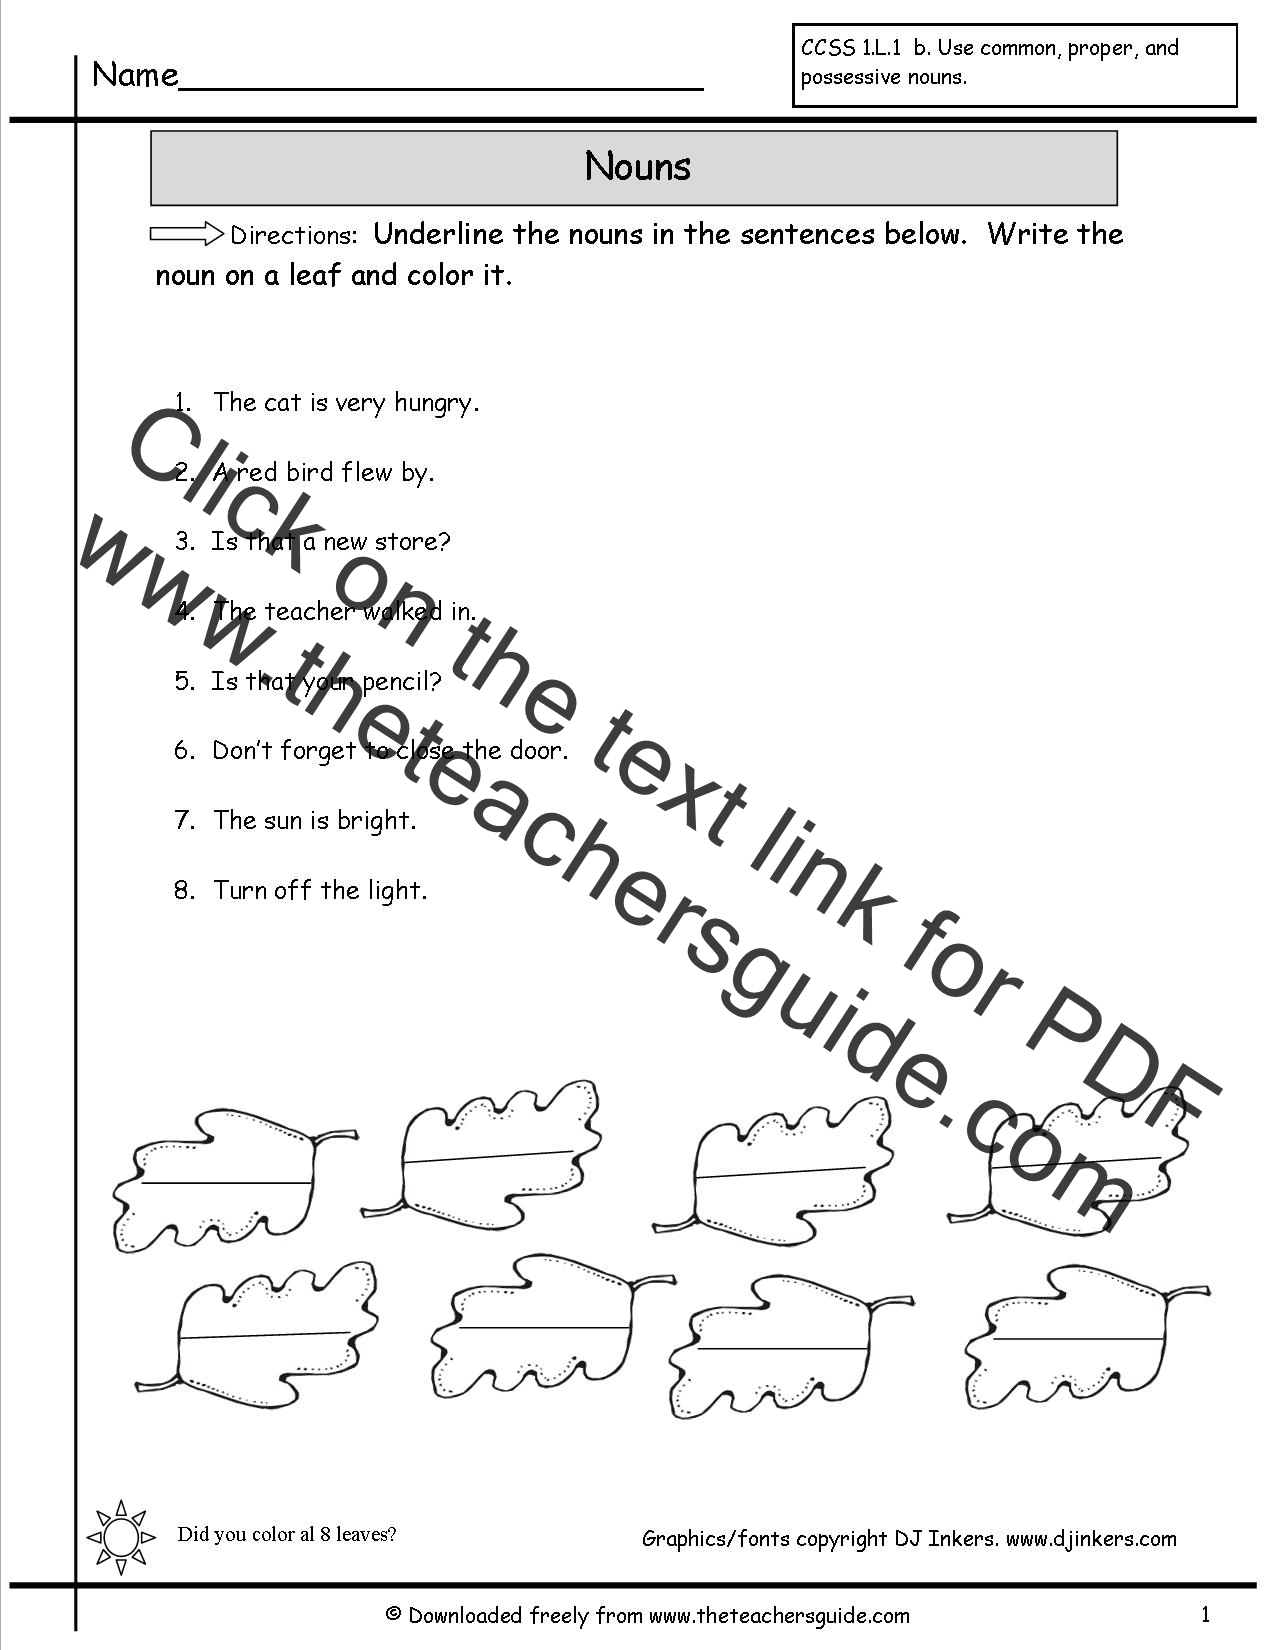 Worksheets Noun Worksheets For Kindergarten nouns worksheets from the teachers guide color leaves worksheet